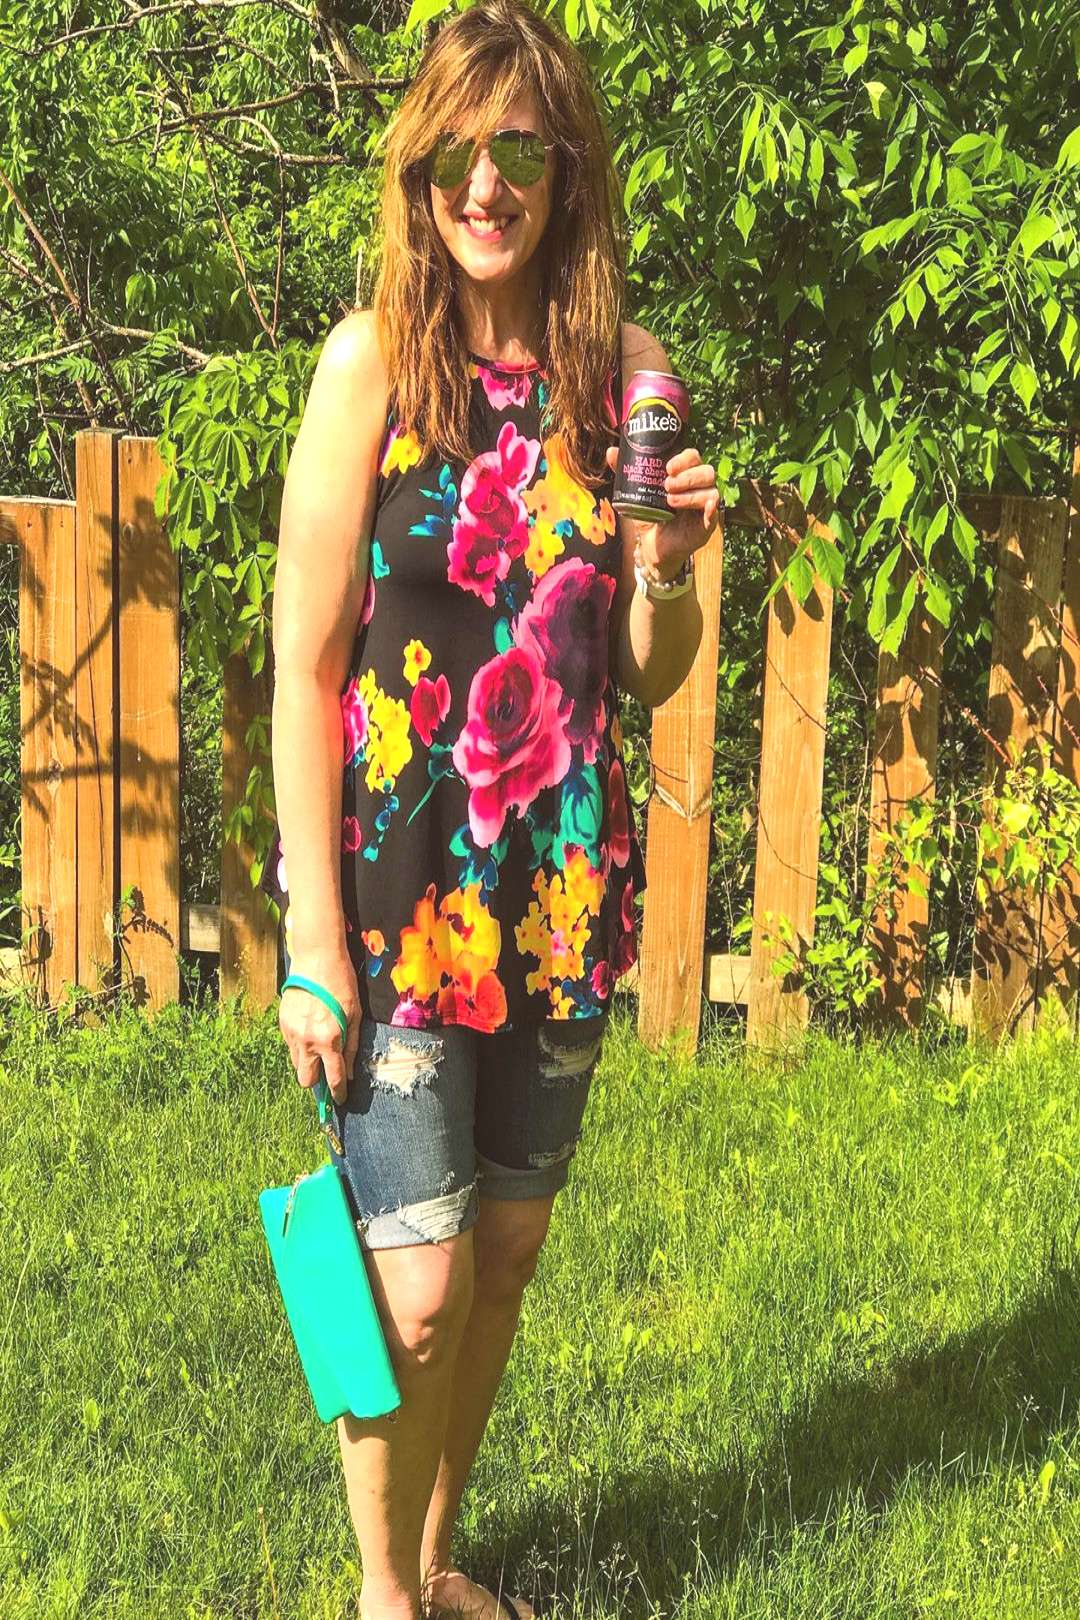 Ruffle Stitch Boutique on May 30 2020 1 person standing outdoor a